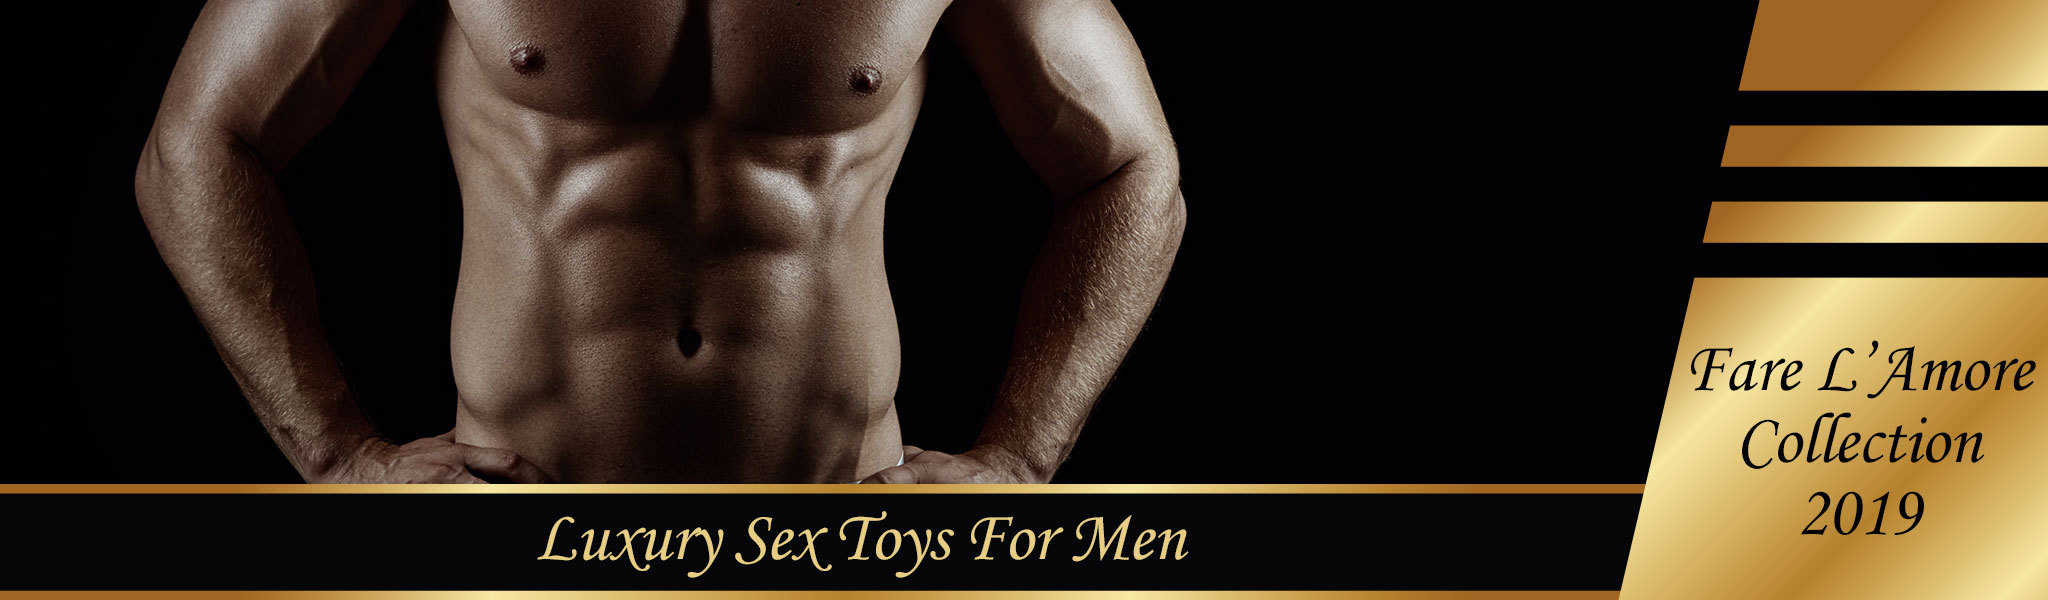 Luxury Sex Toys For Men | Fare L'Amore